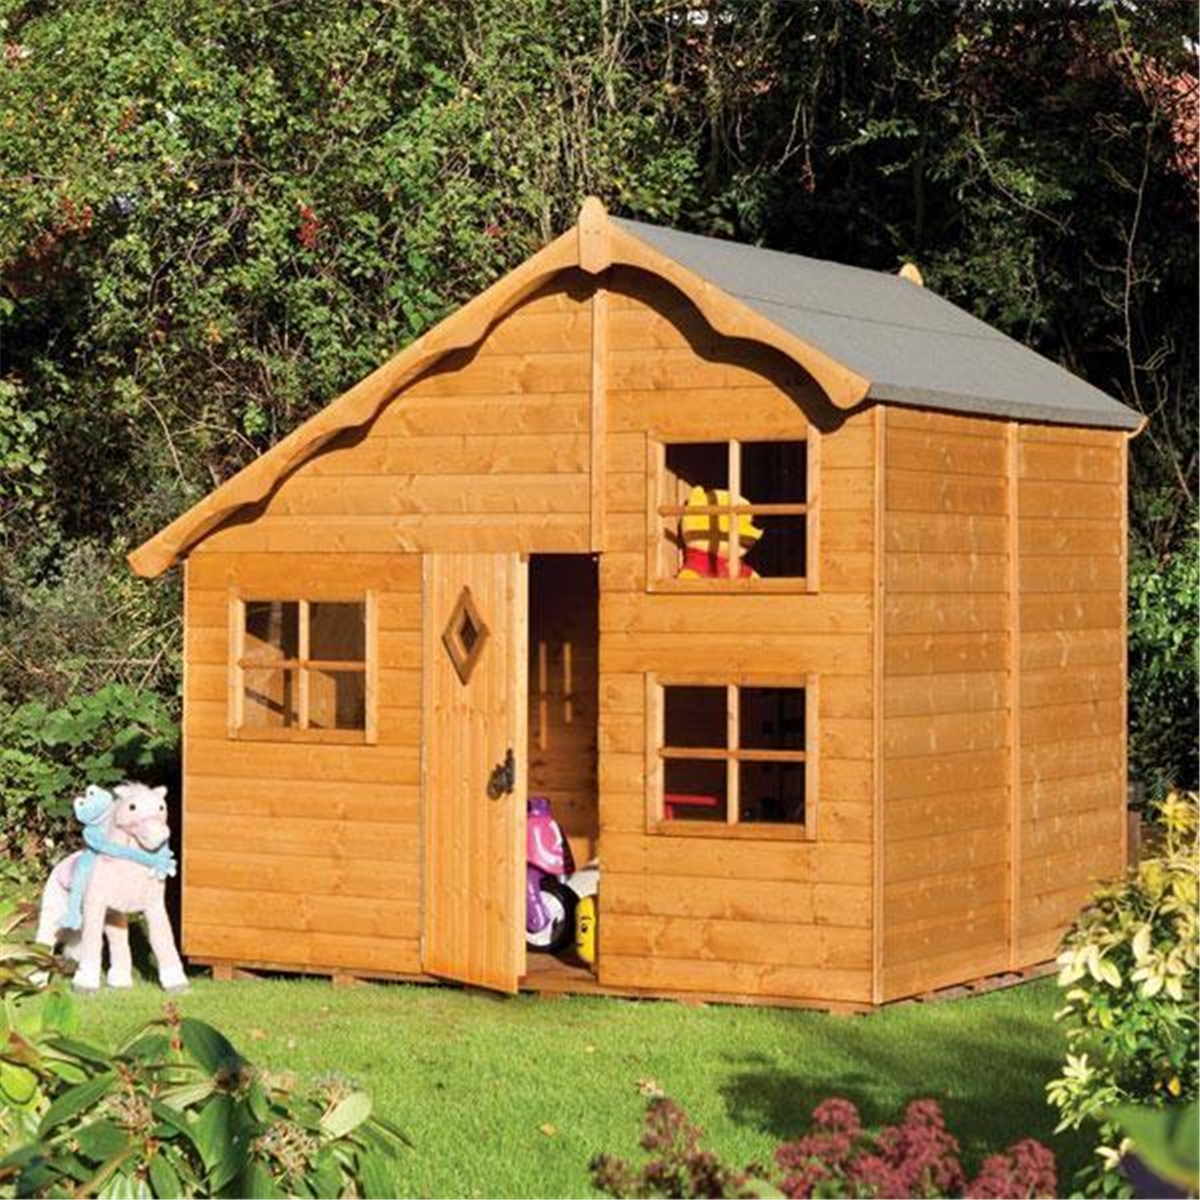 Deluxe Playaway Swiss Cottage Playhouse (2.50m x 2.08m)